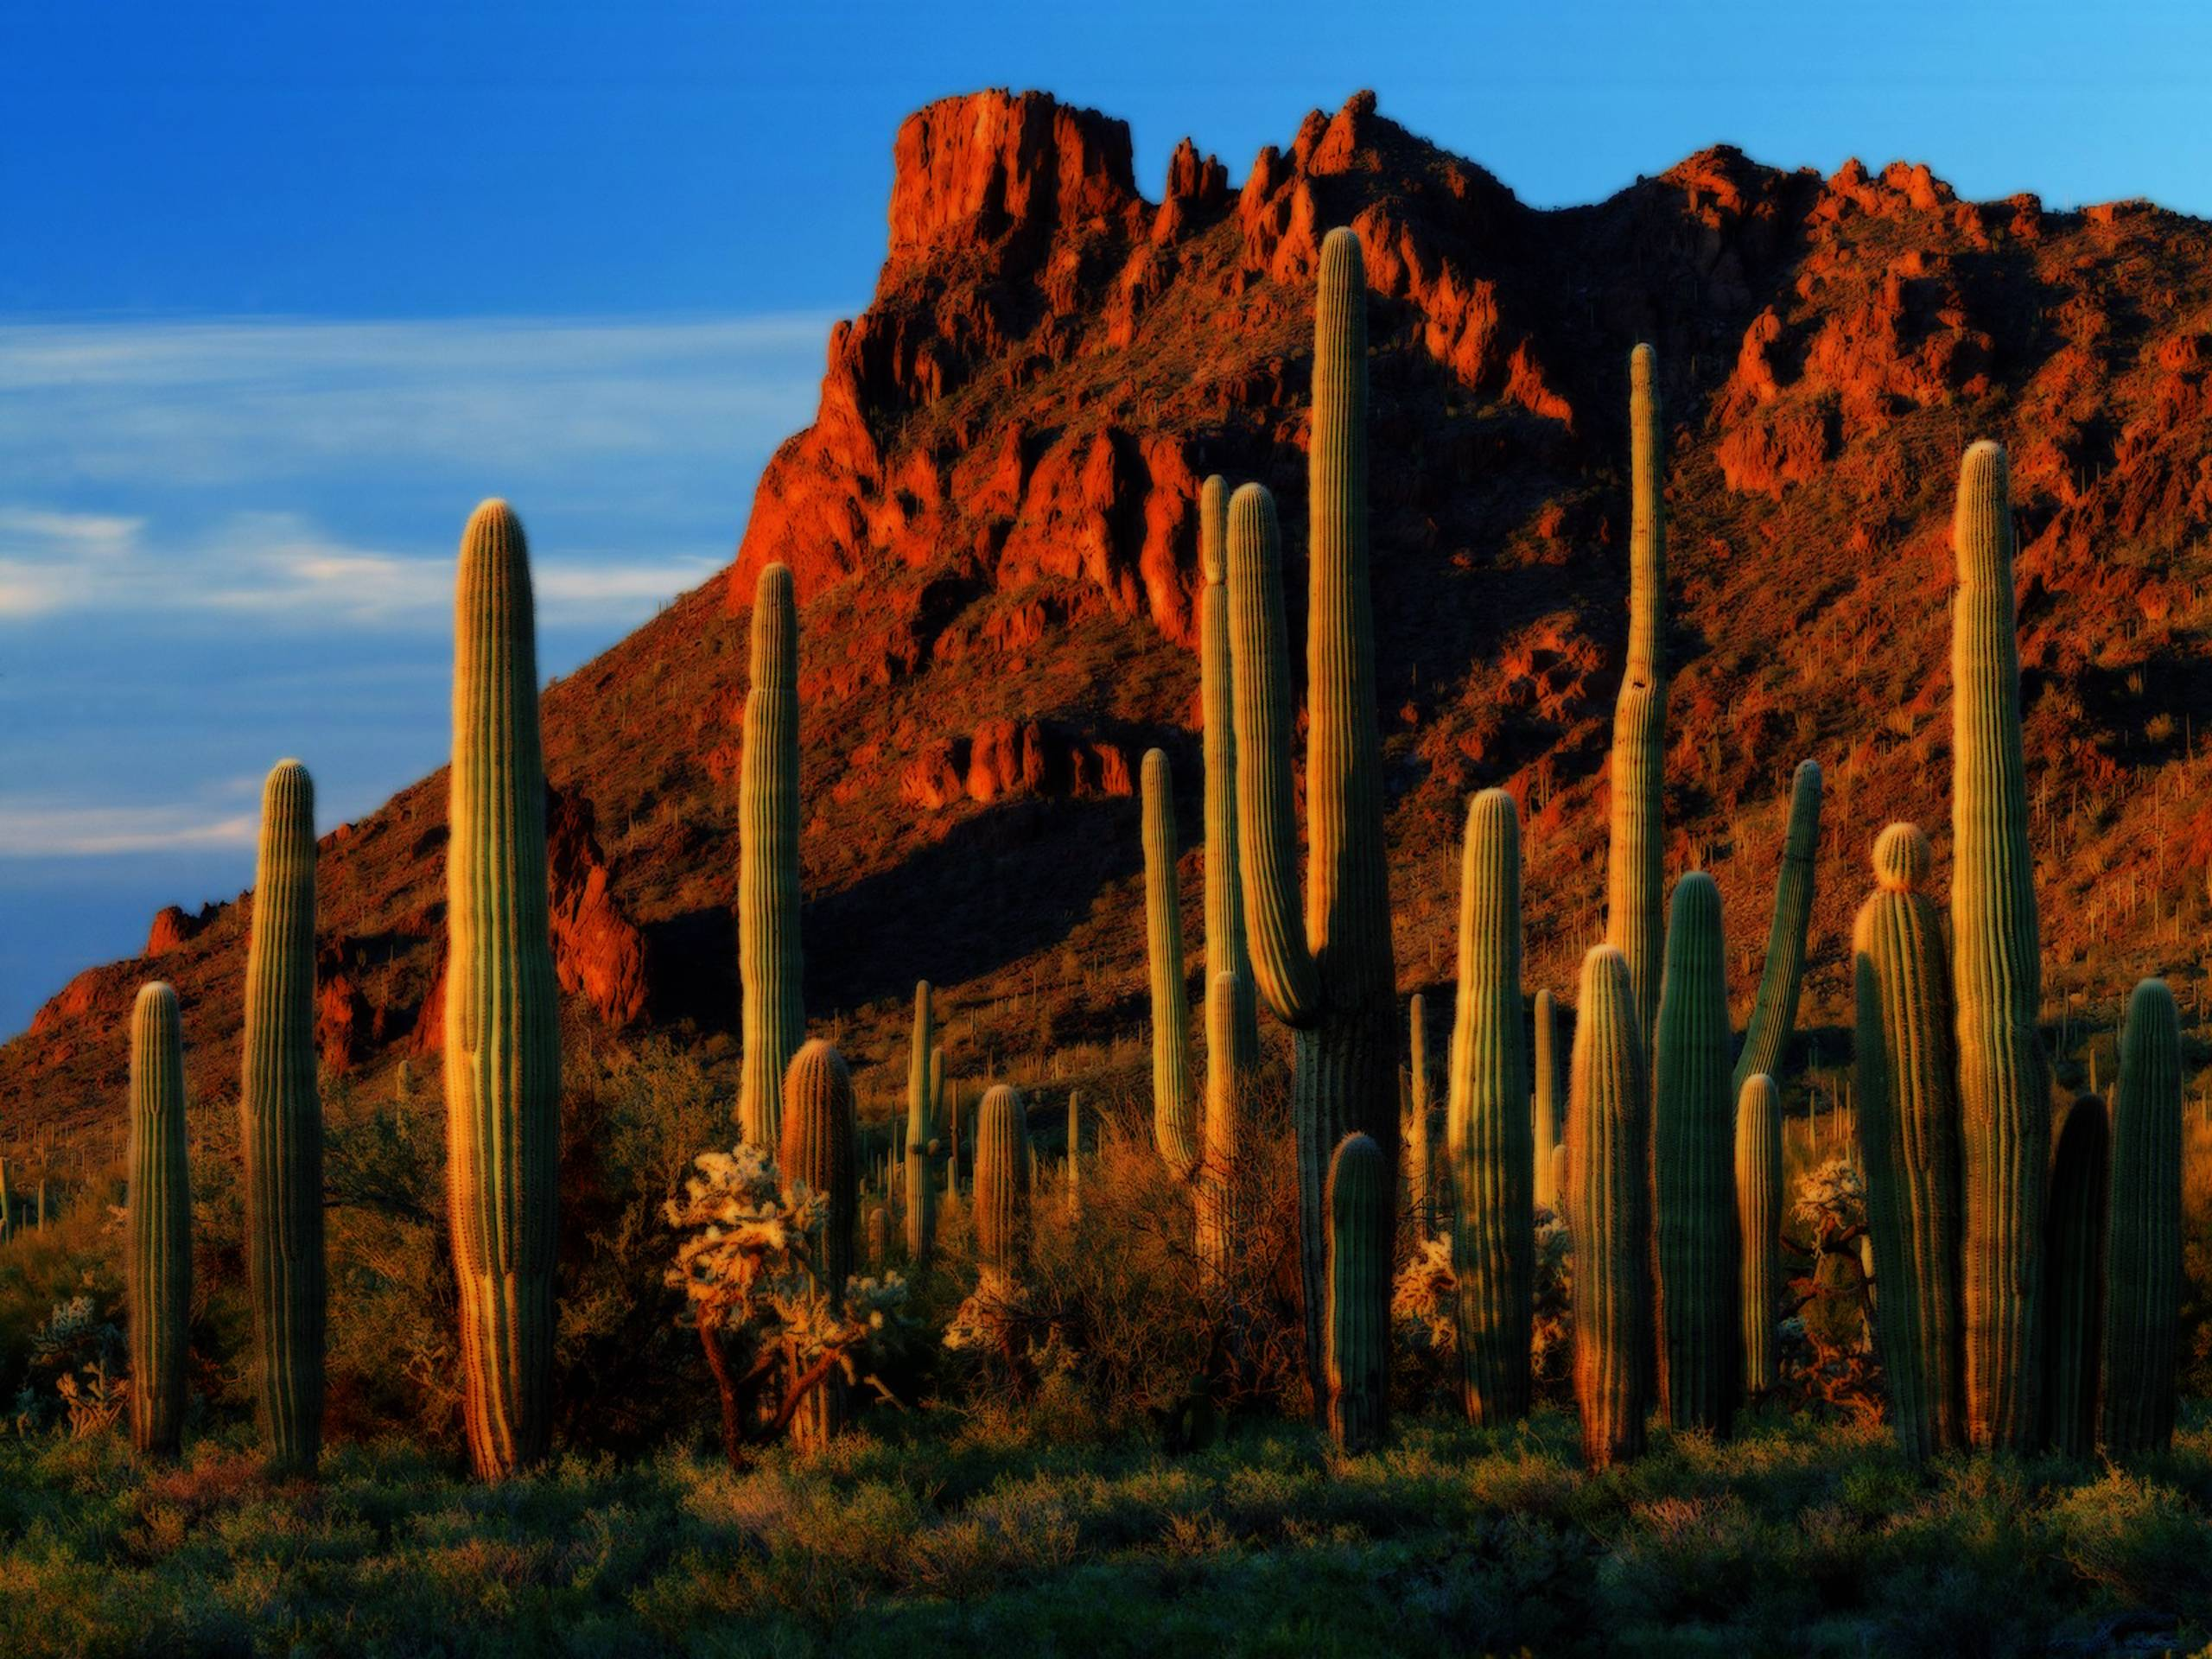 hd cactus wallpapers - photo #34